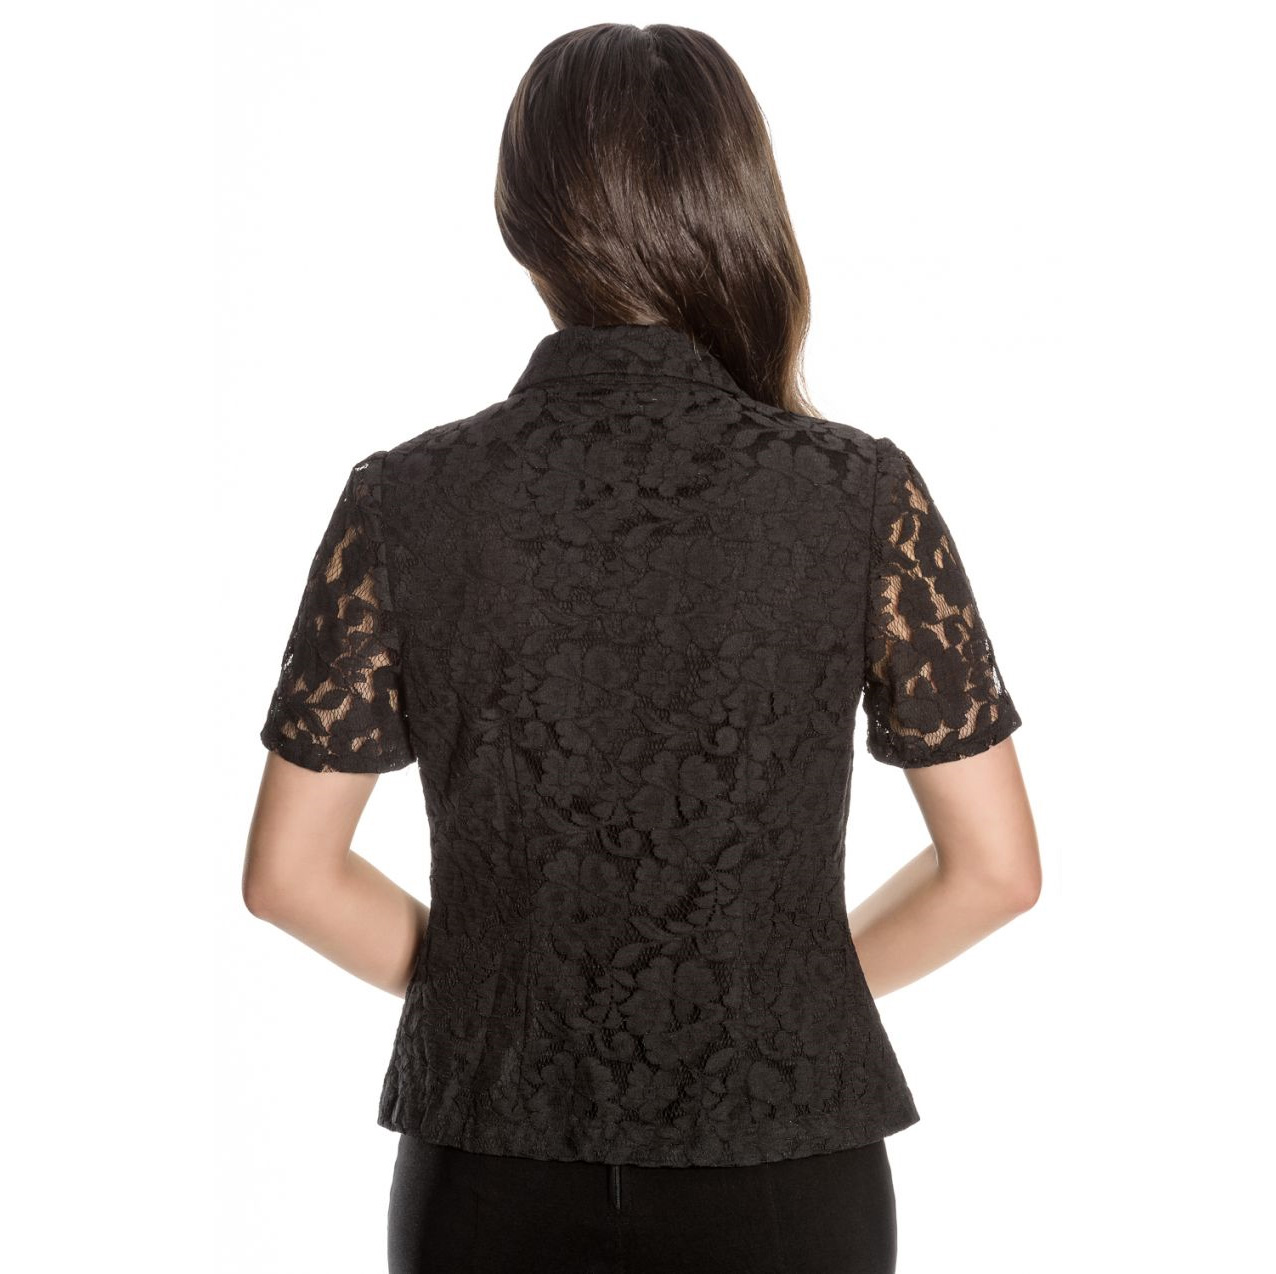 Hell-Bunny-Spin-Doctor-Vampire-Gothic-Shirt-Top-ROWENA-Lace-Blouse-All-Sizes Indexbild 17